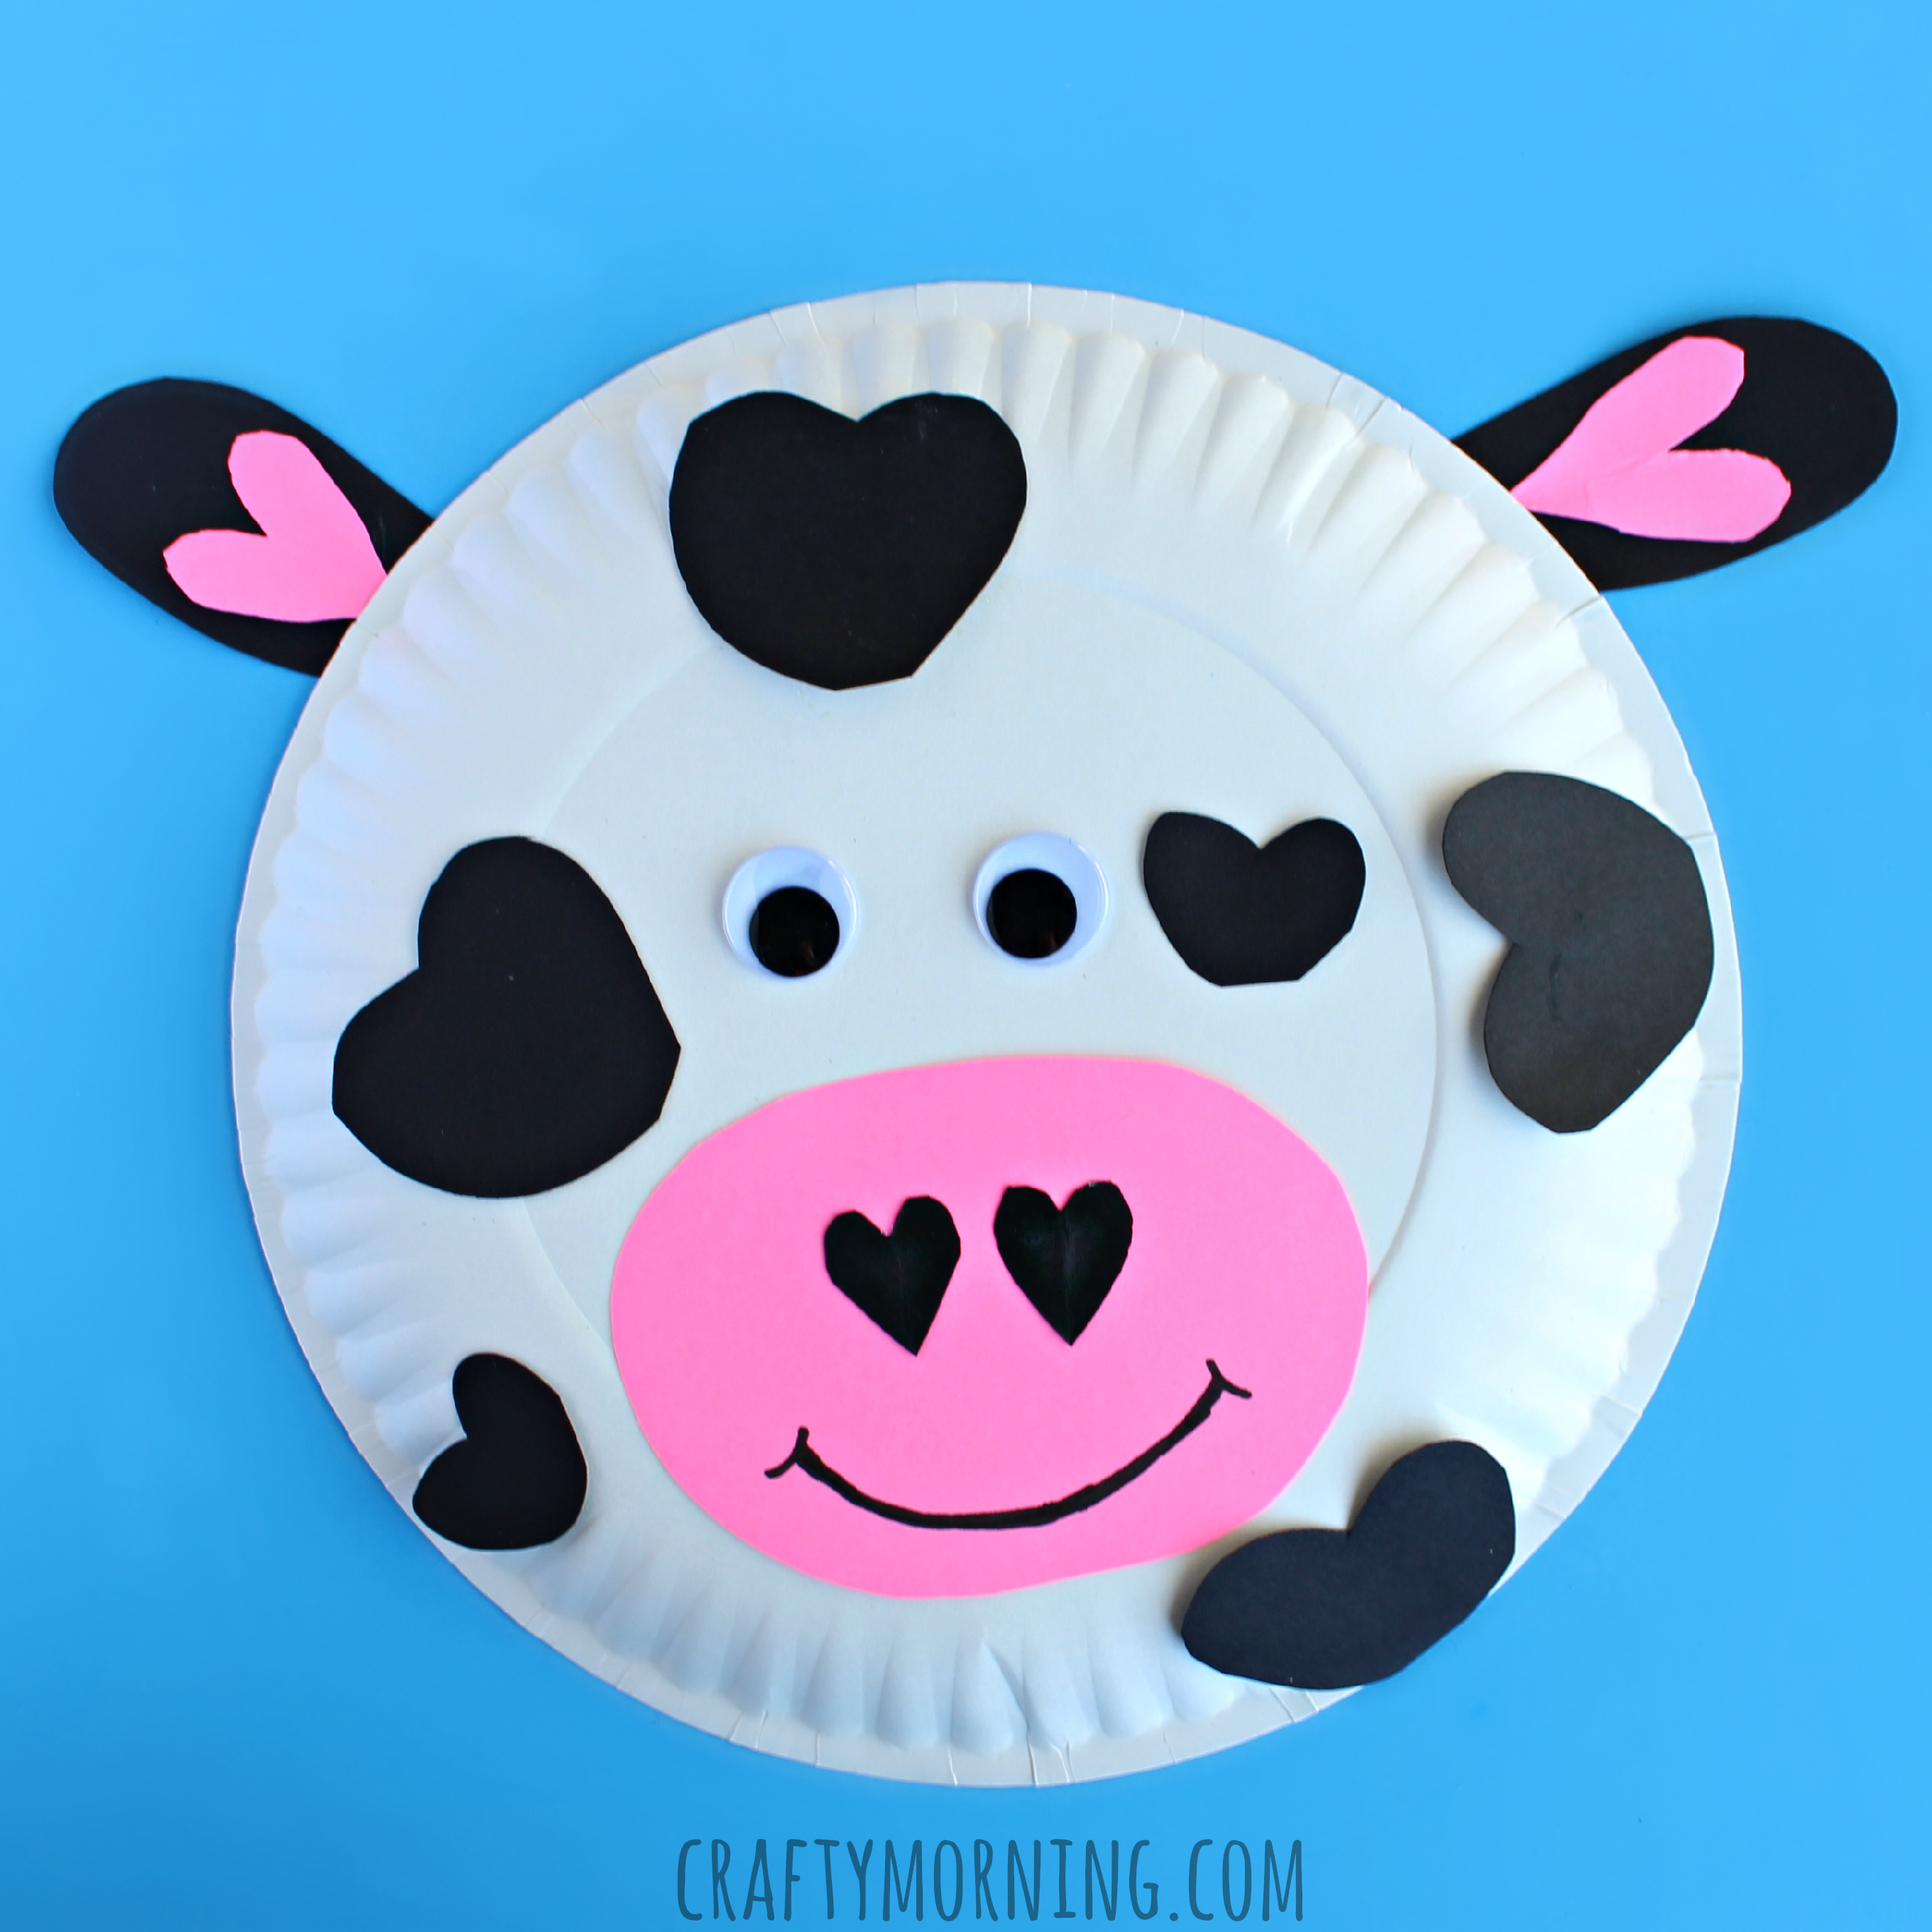 Paper Plate Cow Valentine Craft for Kids - Crafty Morning